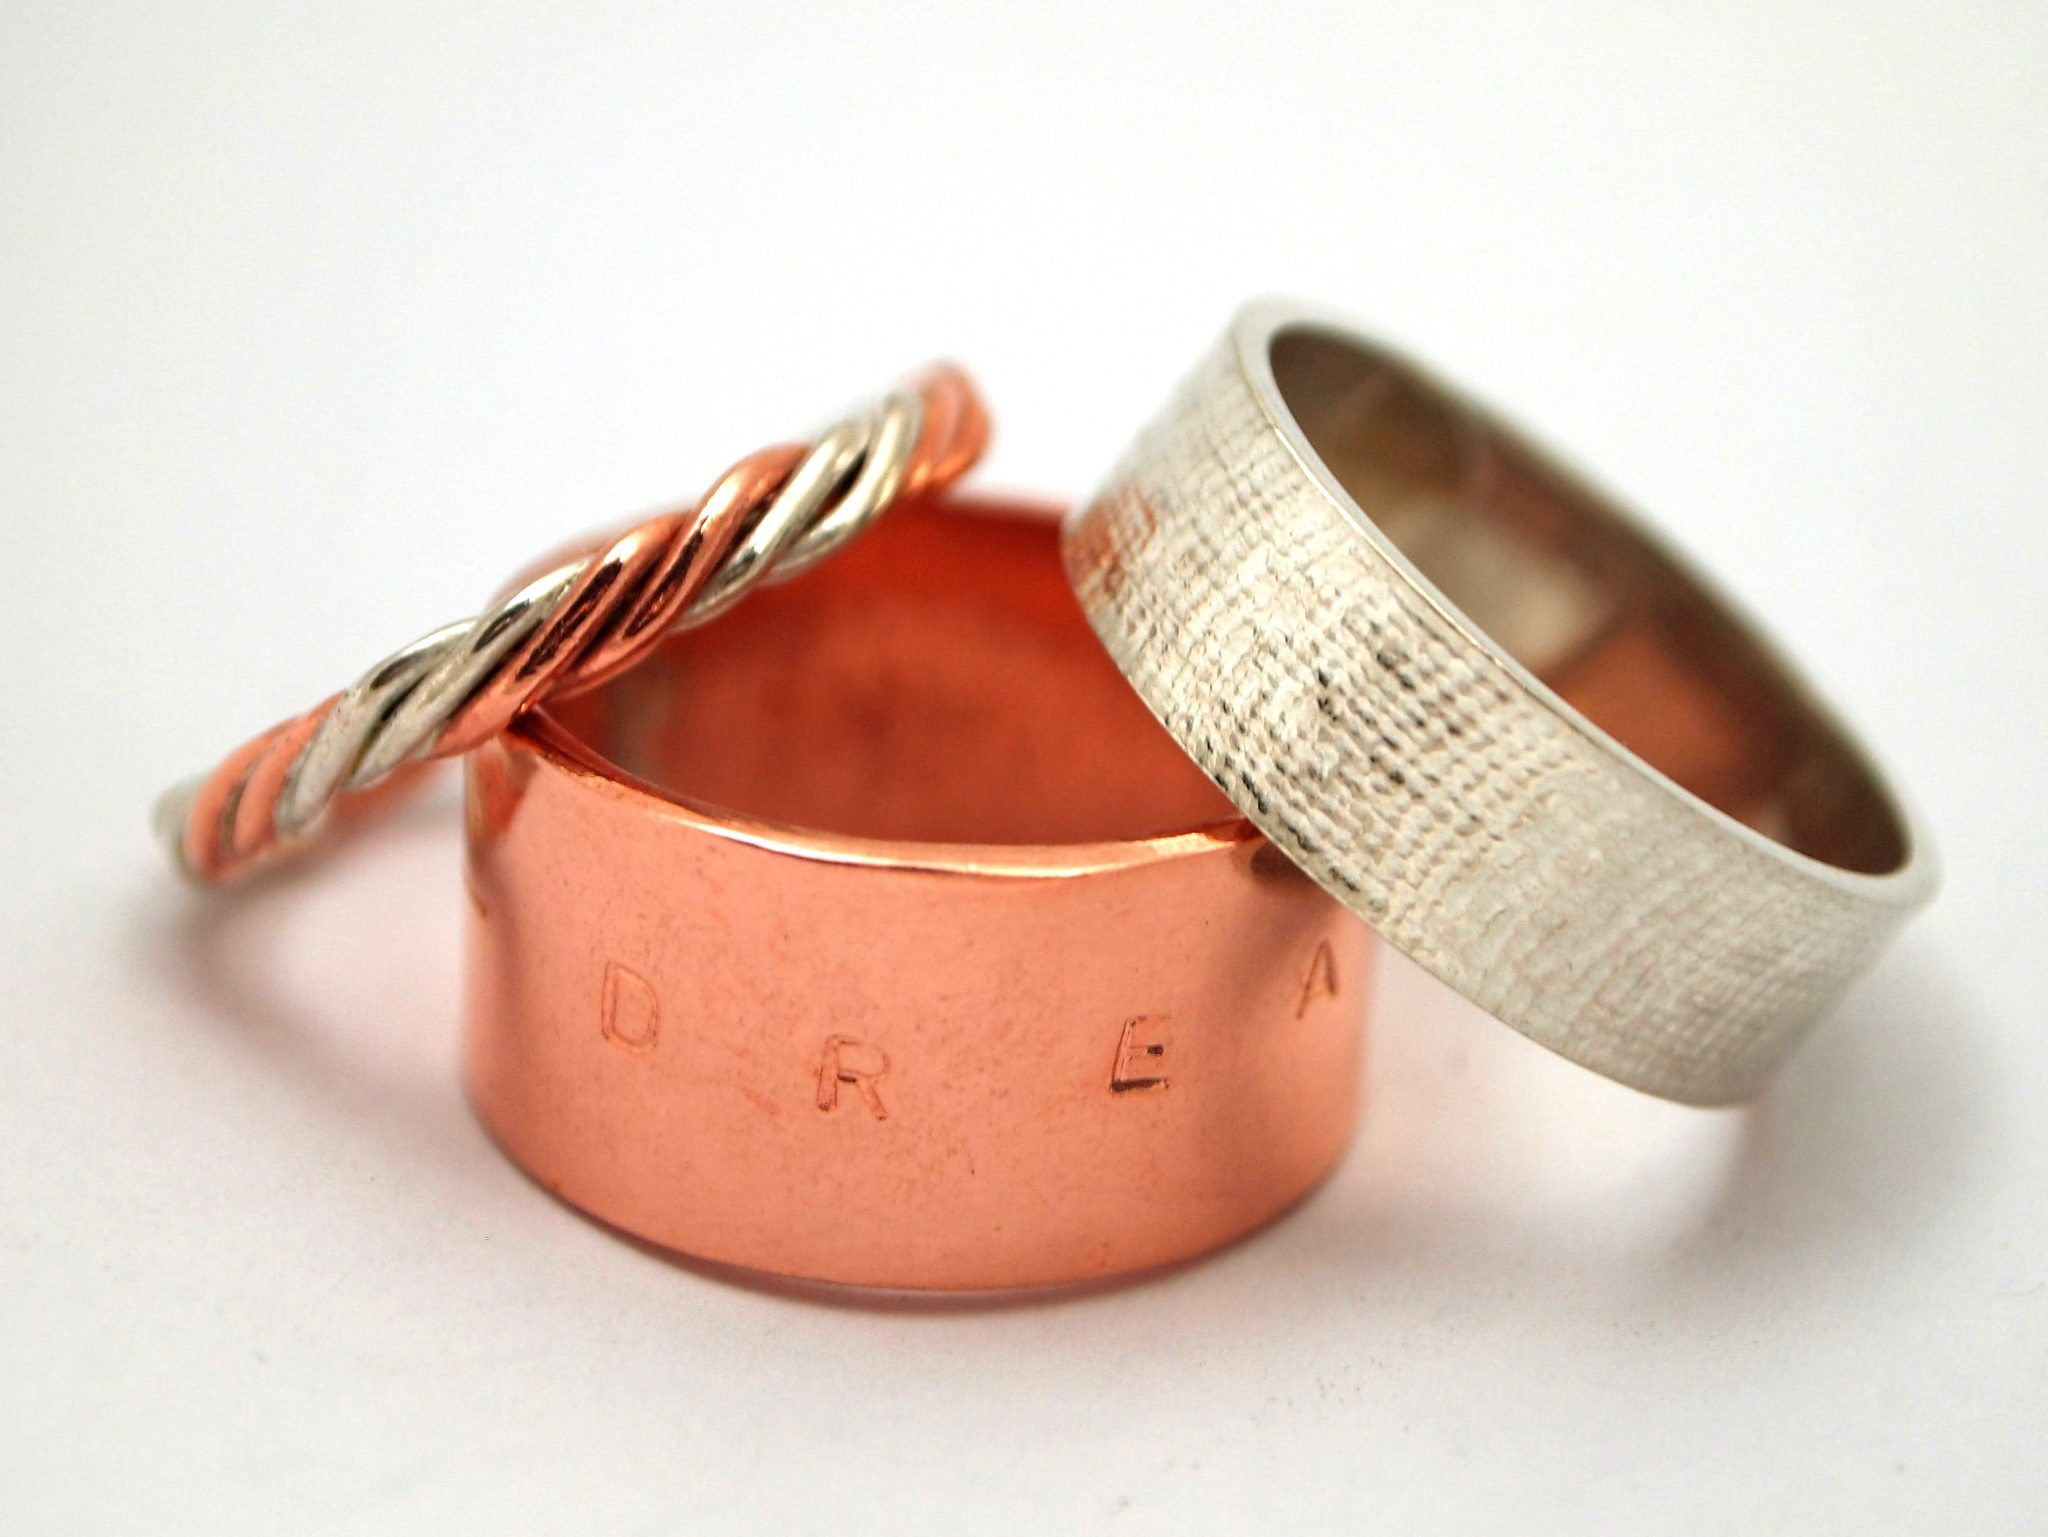 Beginners and Advanced Jewellery and Silversmithing Courses